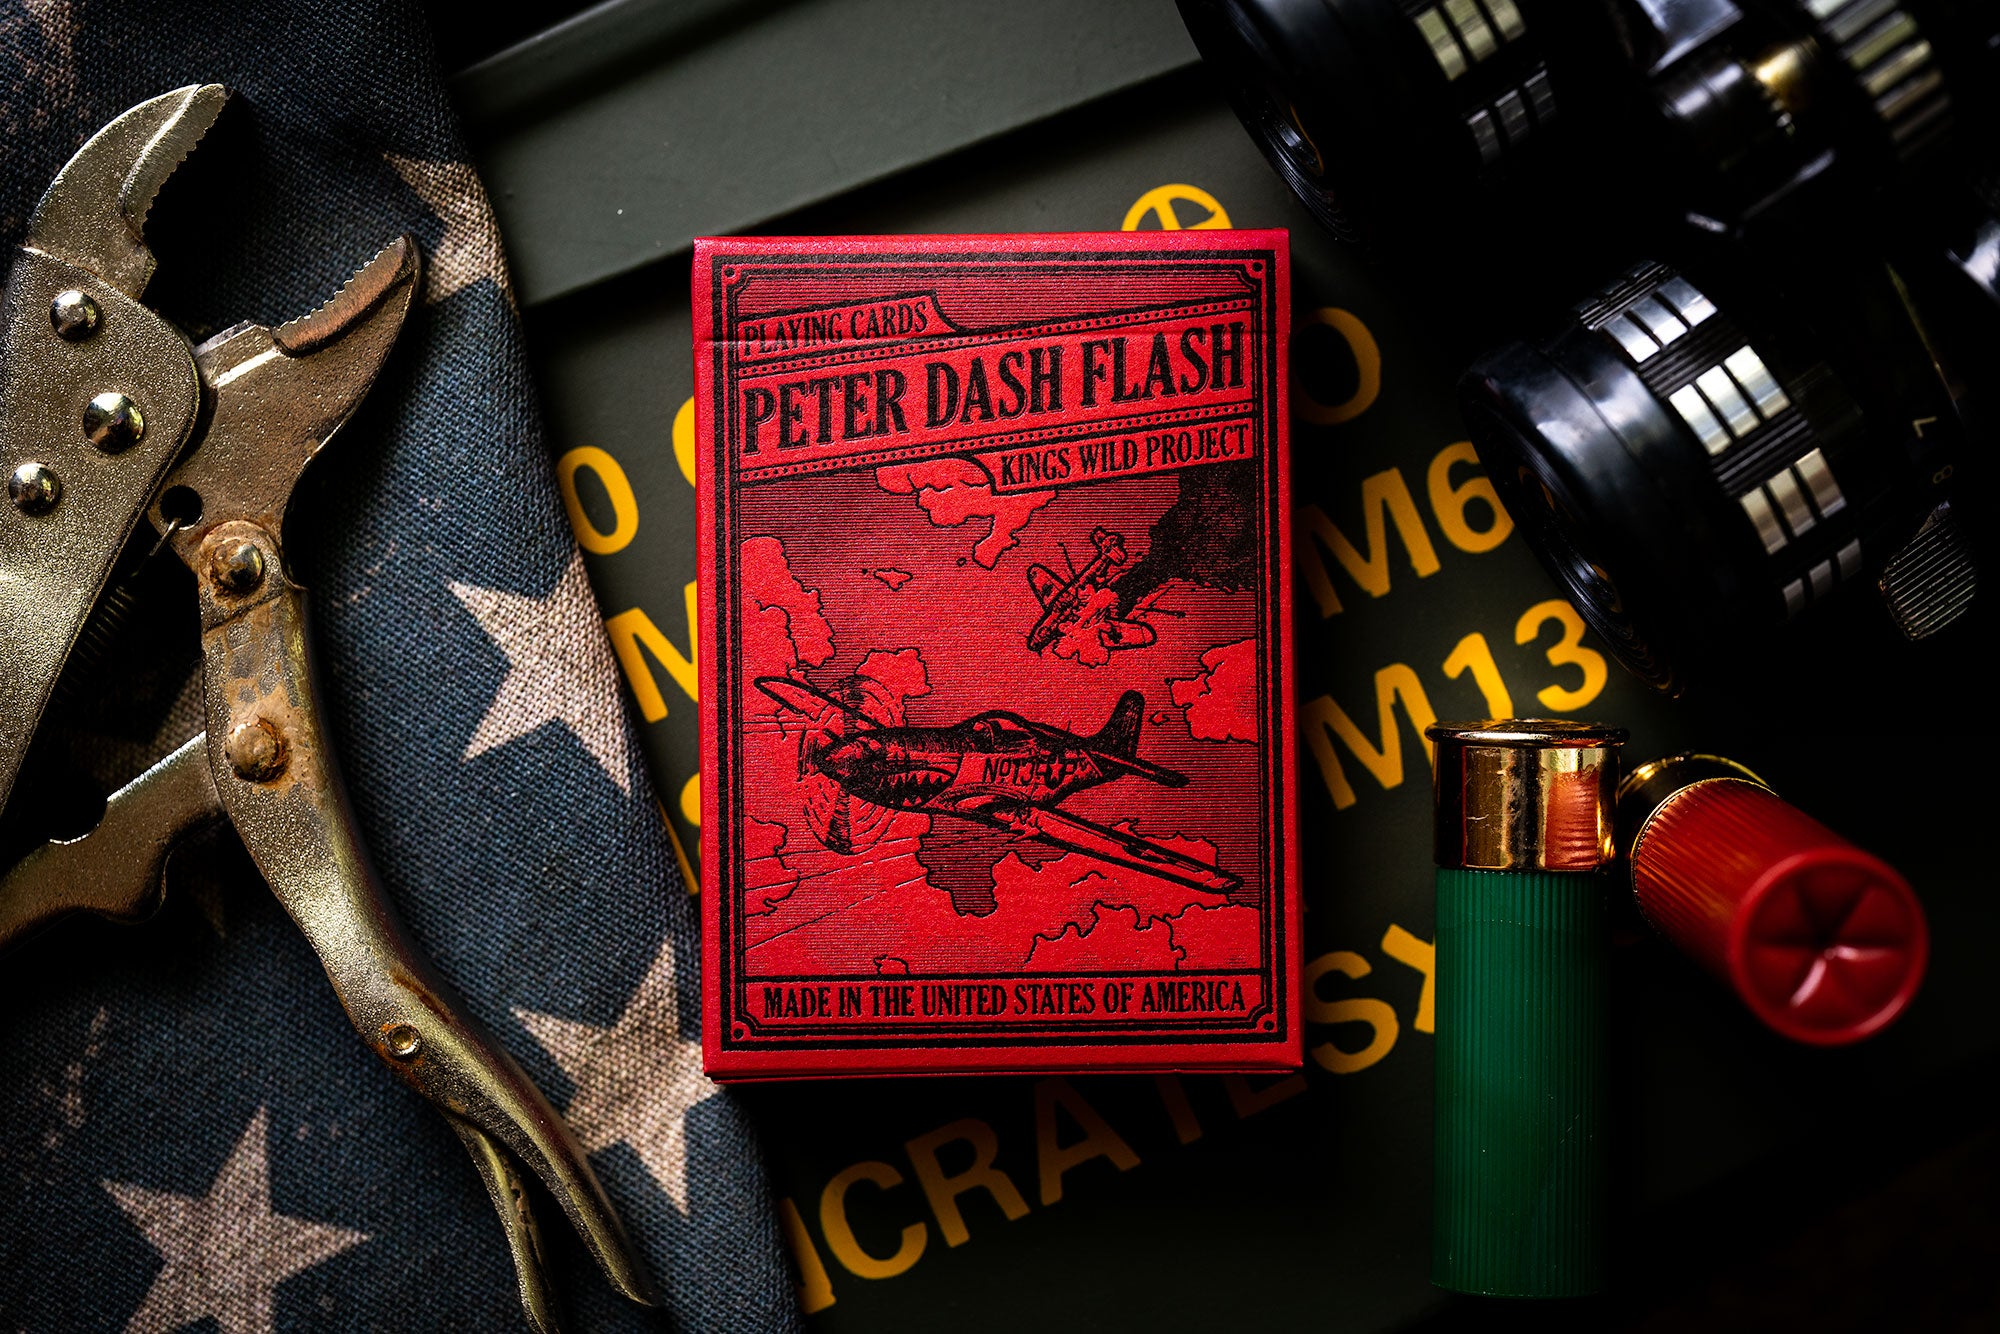 Peter Dash Flash - Limited Edition